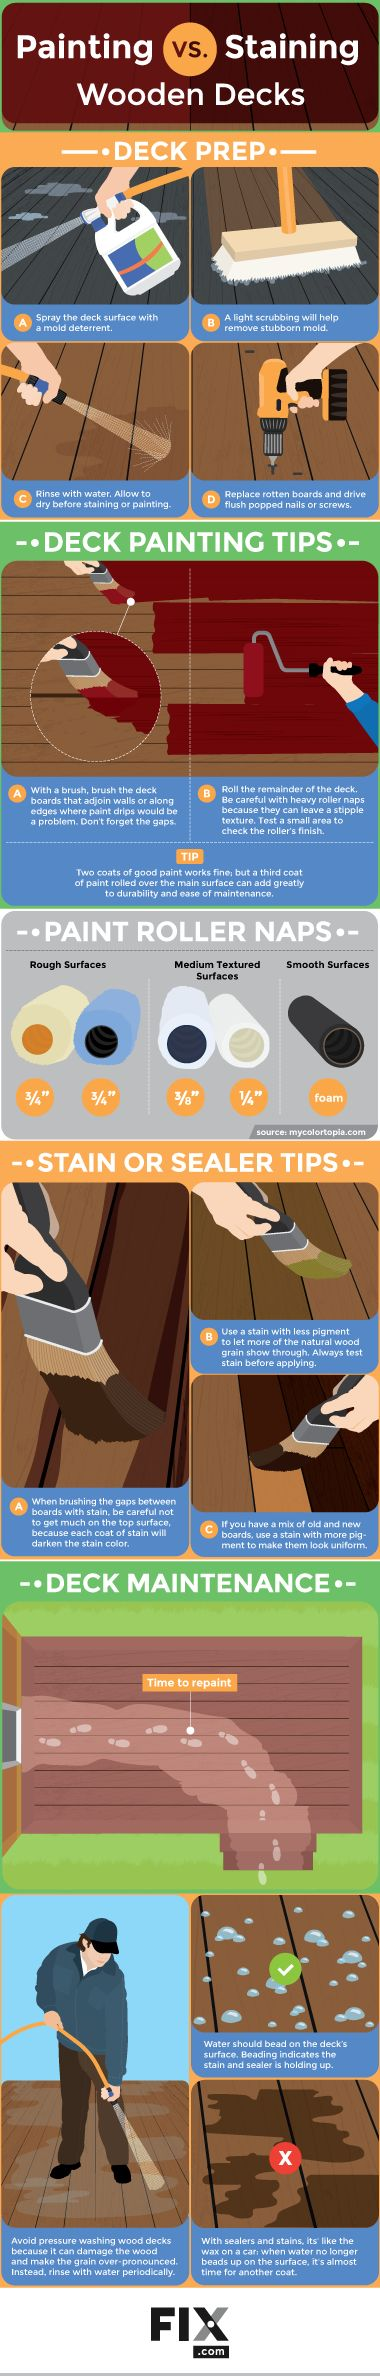 Anyone with a deck grapples with the decision of whether to use paint or stain. Find out all the facts here!